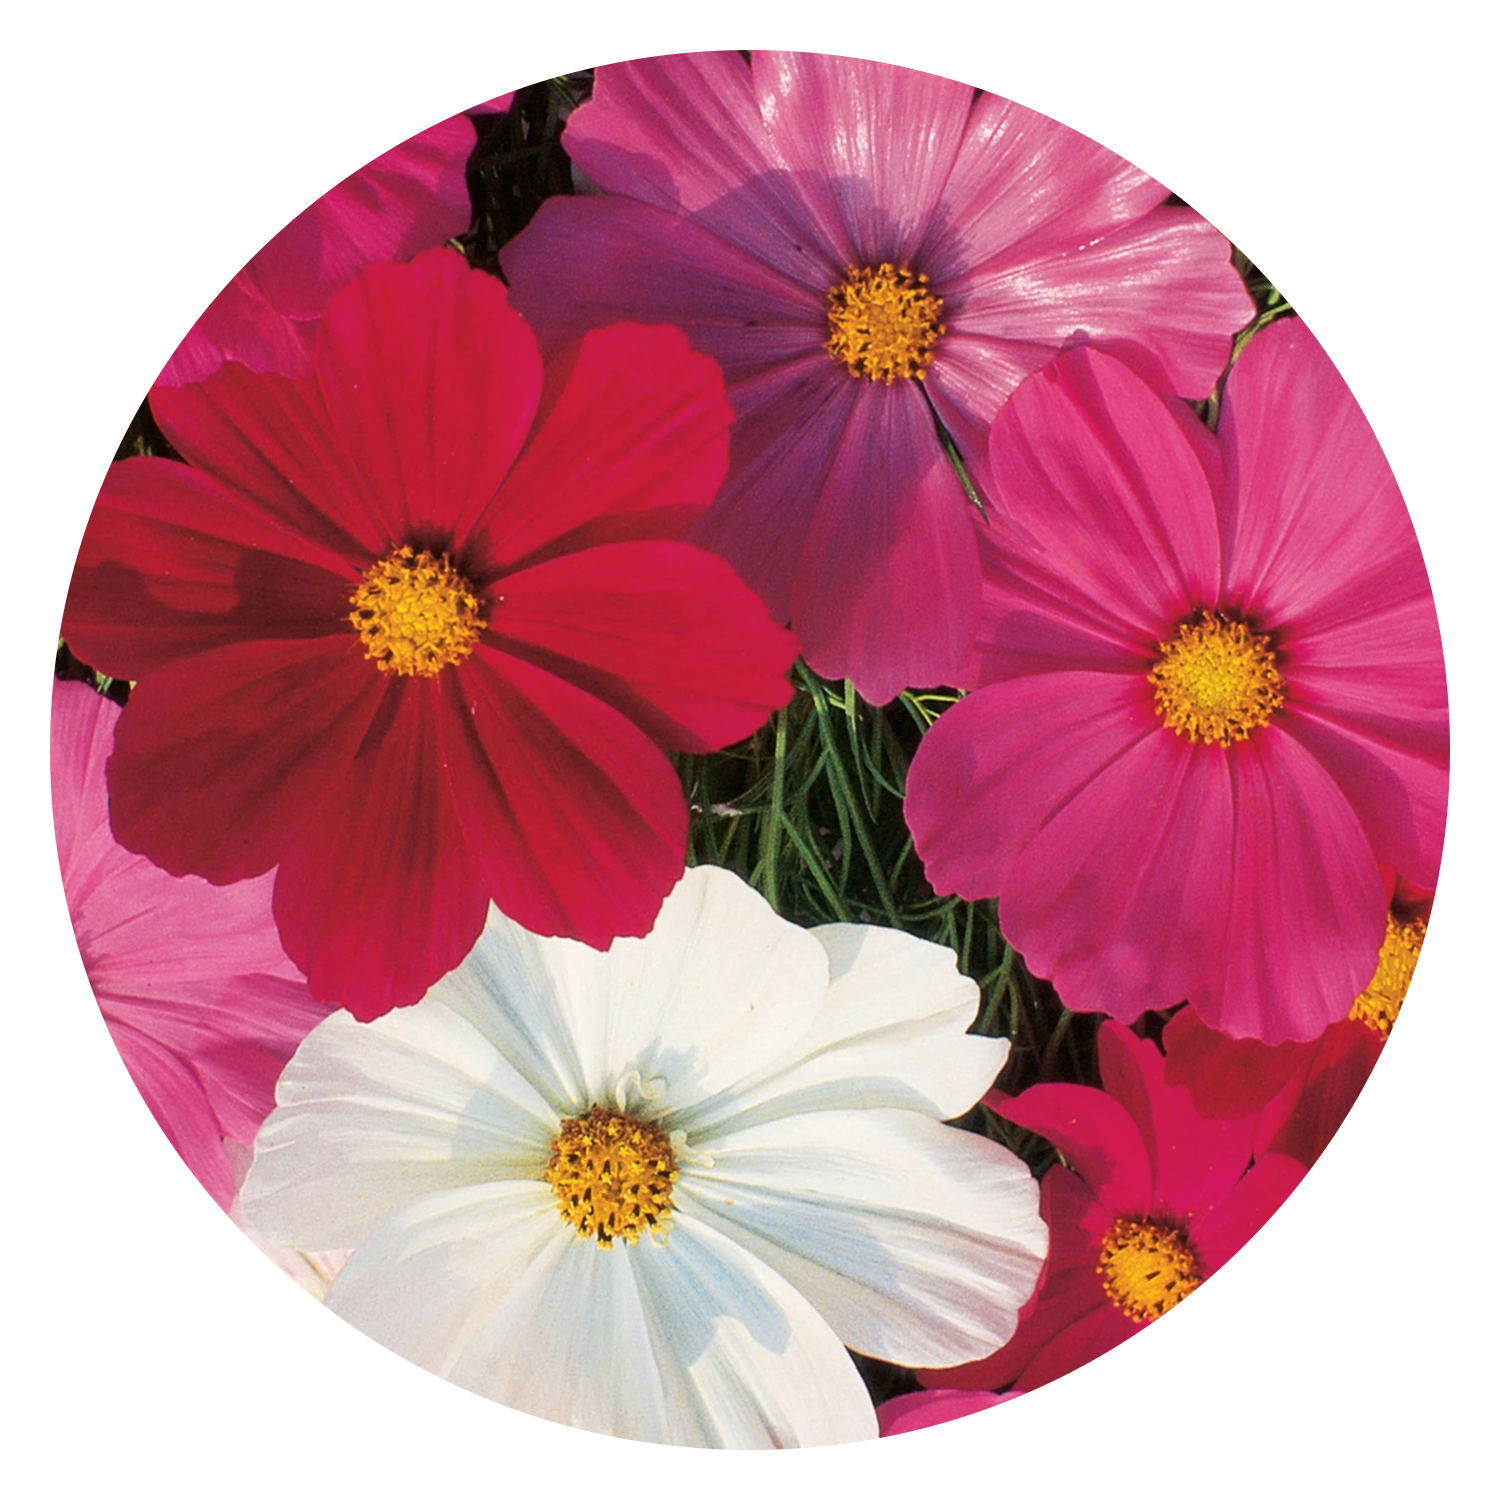 Sensation Mixed Colors Cosmos Flower Seeds, link to product page.